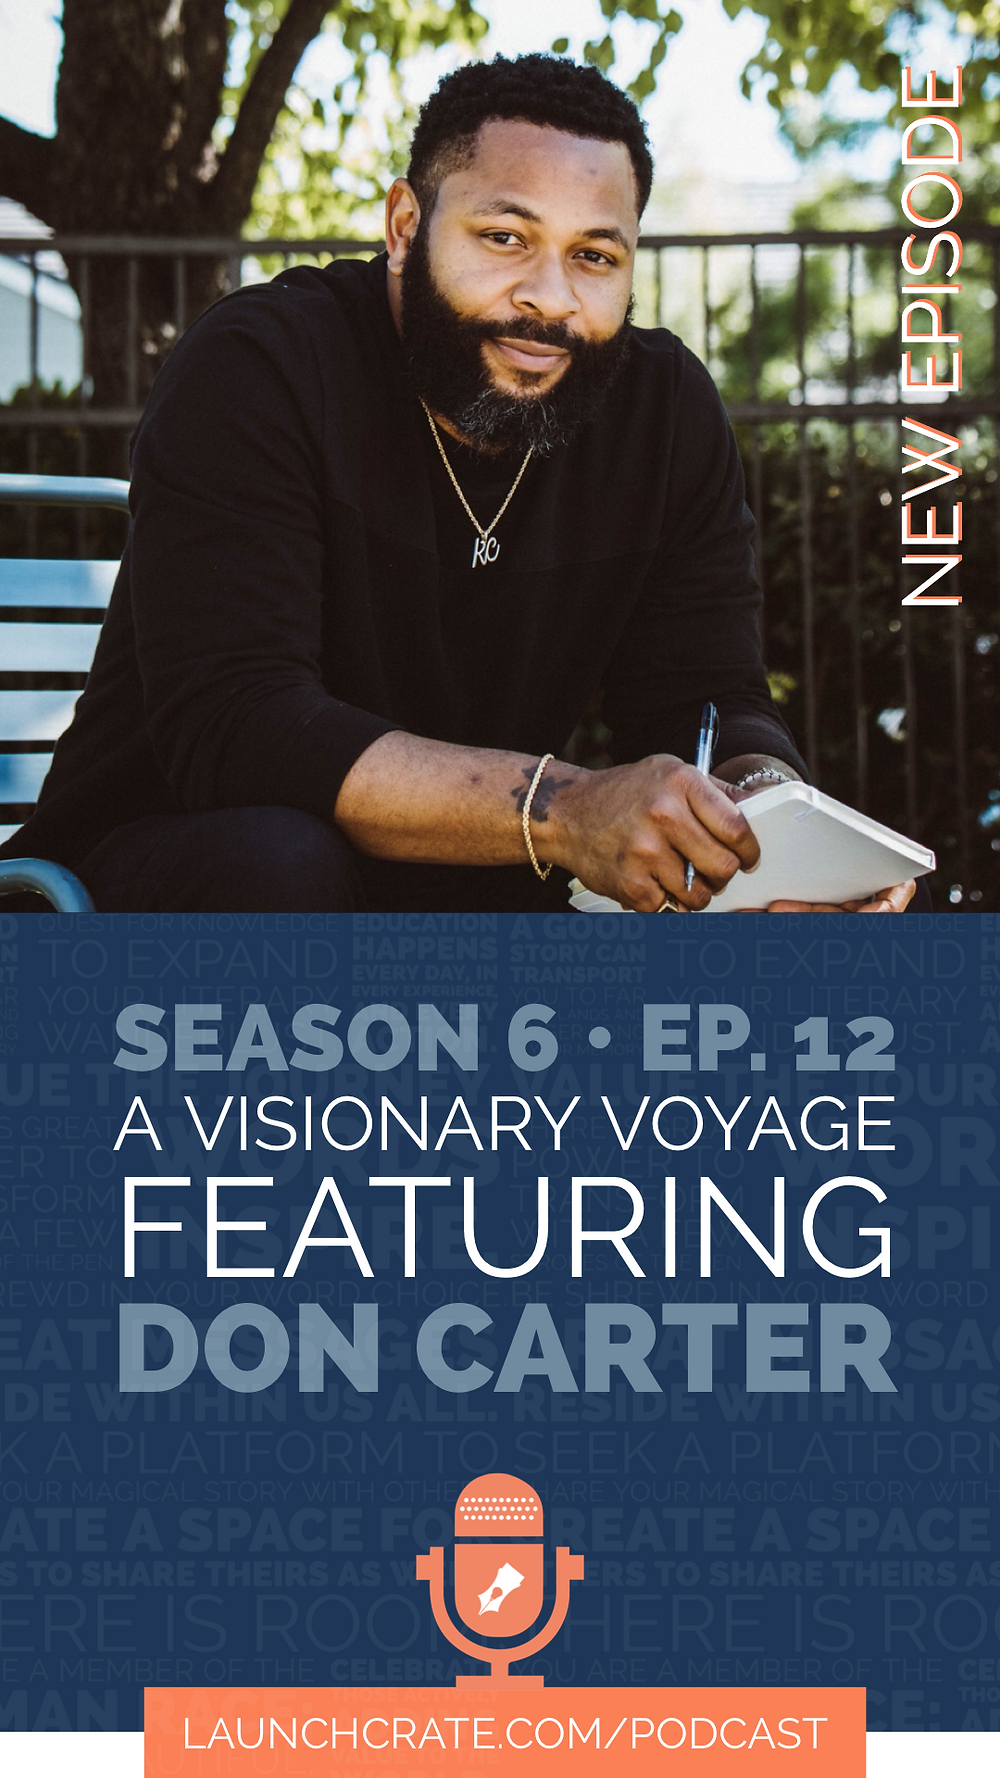 Podcast Season 6, Episode 12 with Don Carter